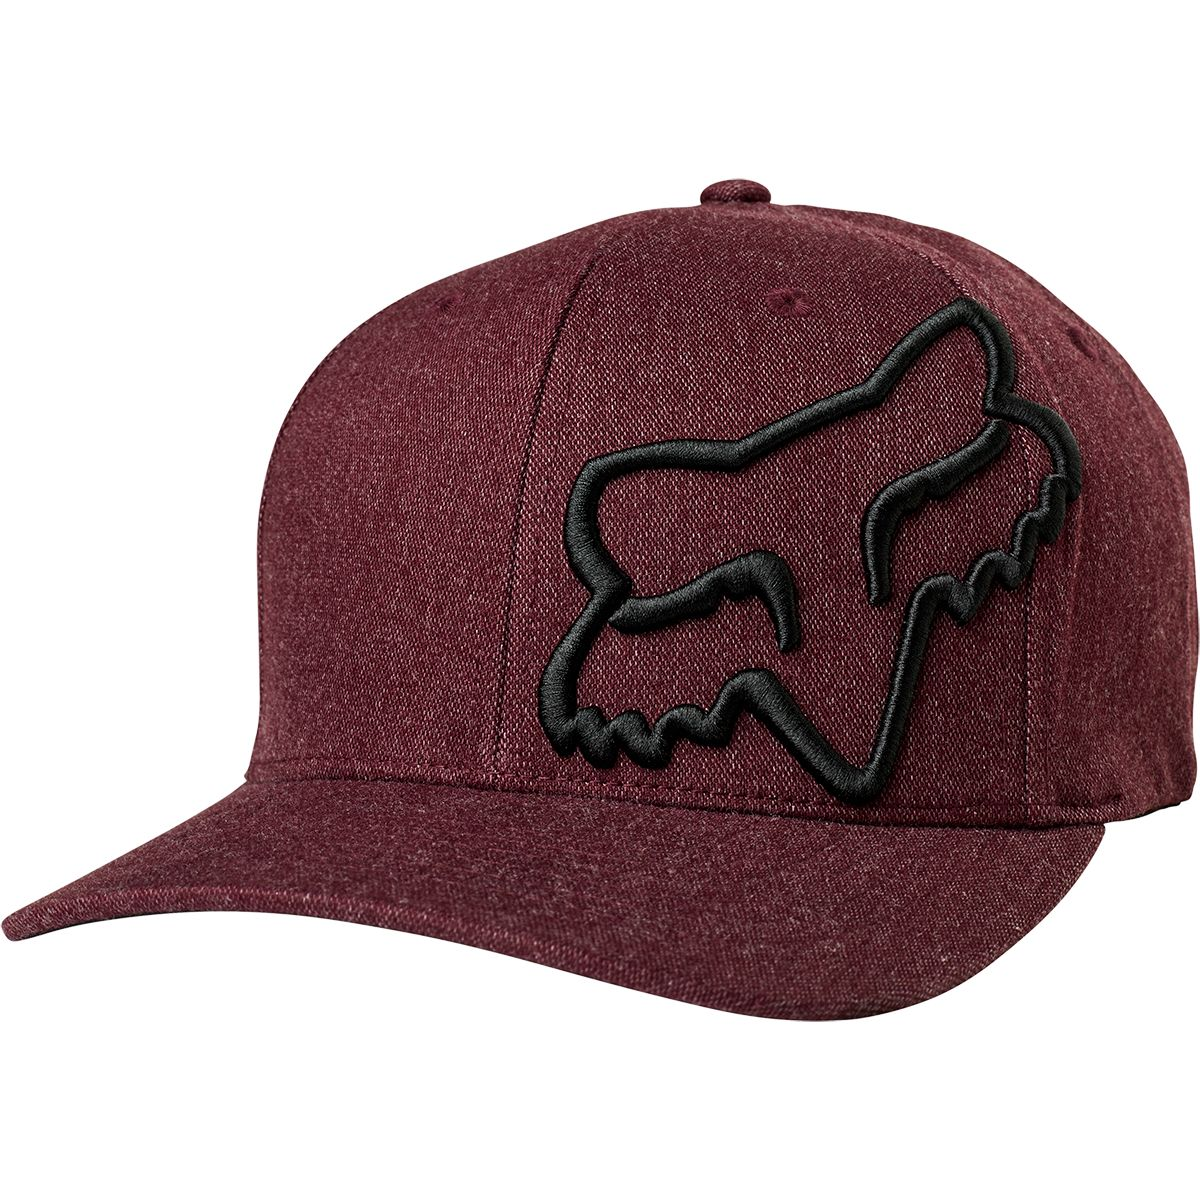 FOX CLOUDED FLEXFIT HAT baseball cap | Headwear